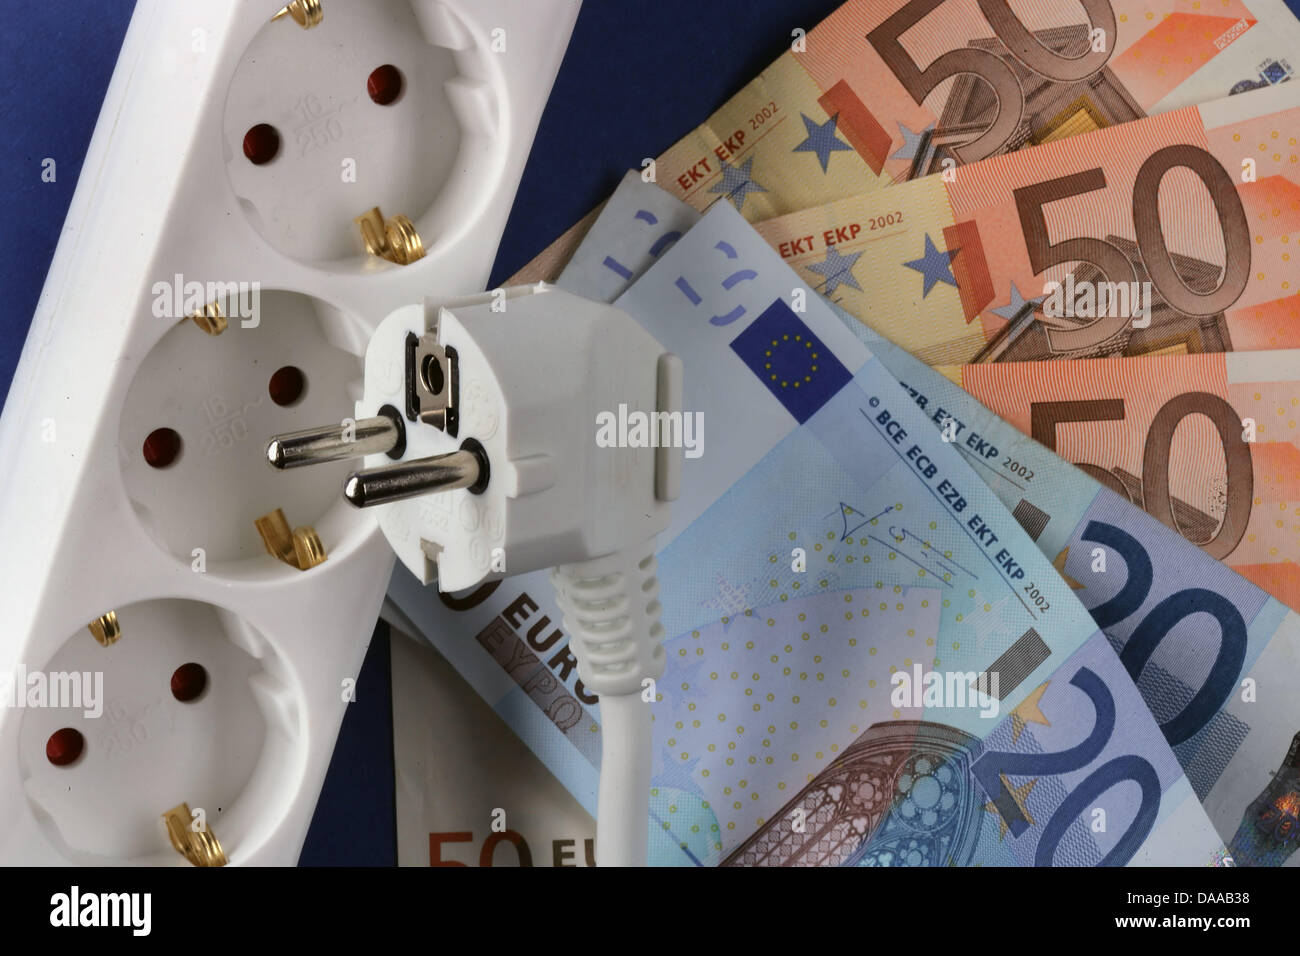 A file picture taken on 4 October 2006 shows a plug and electrical outlet next to Euro banknotes in Schwerin, Germany. - Stock Image